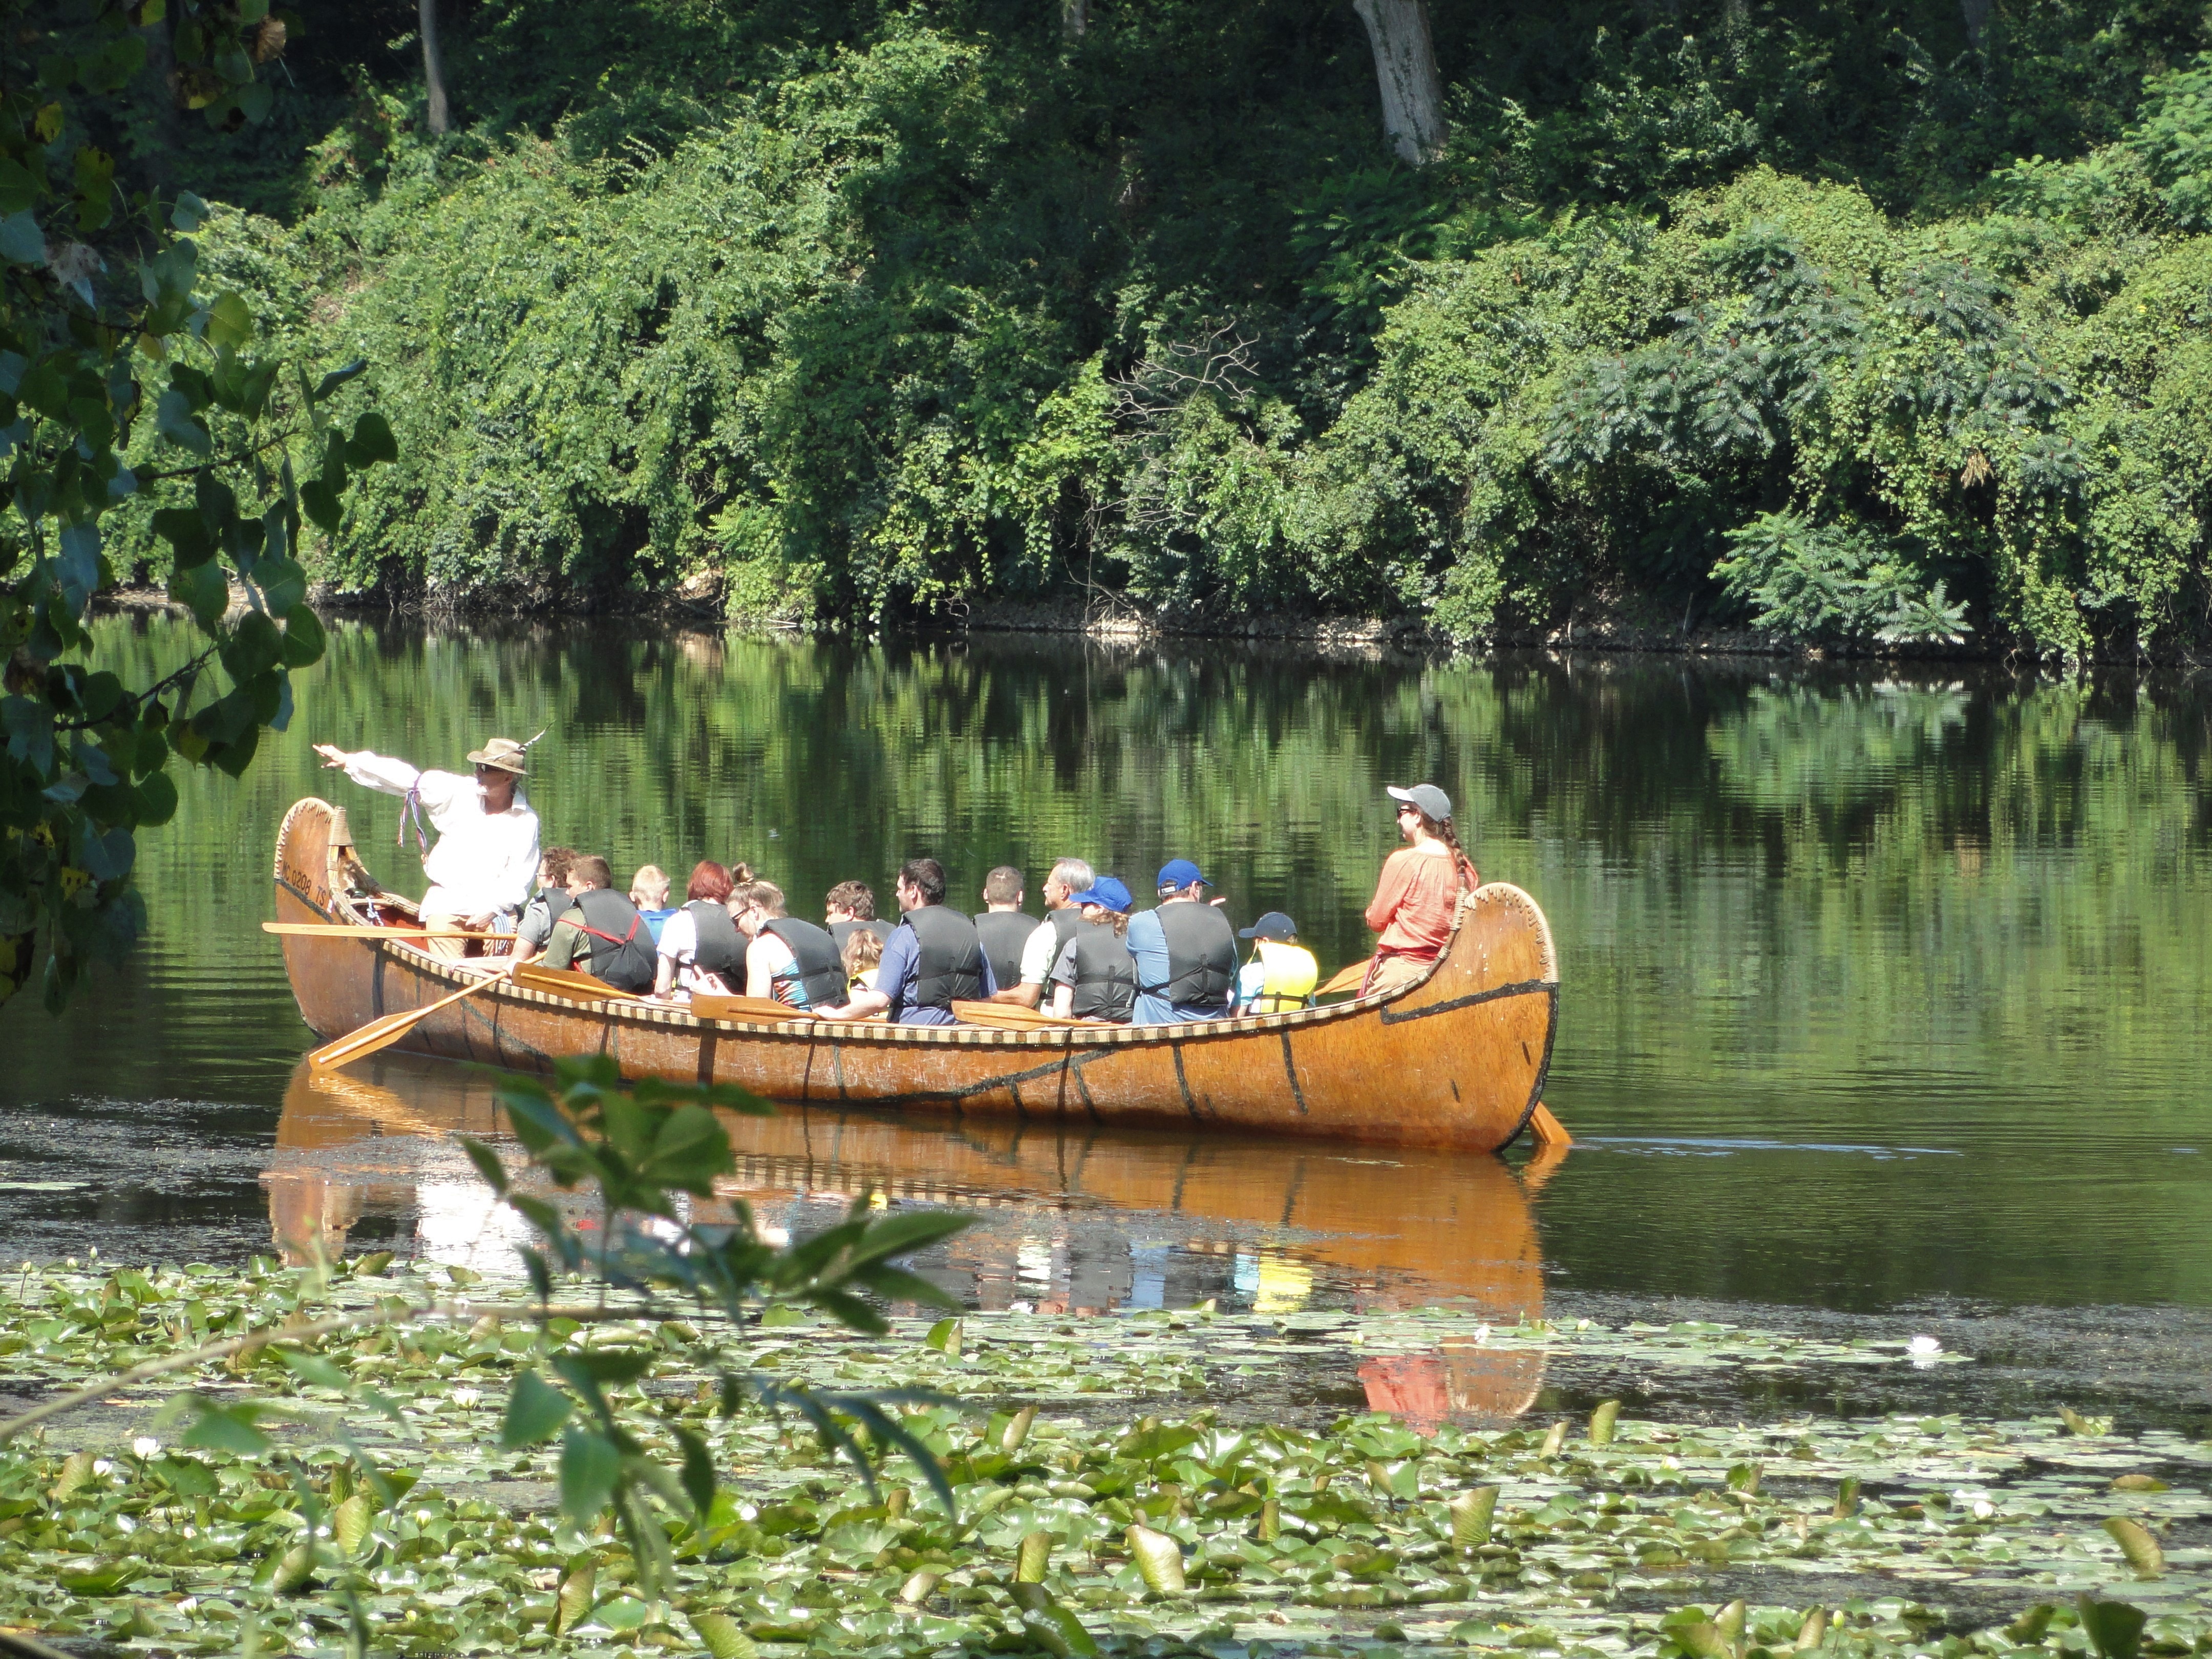 People take a guided tour of the St. Joseph River in a canoe lead by a living history demonstrator.